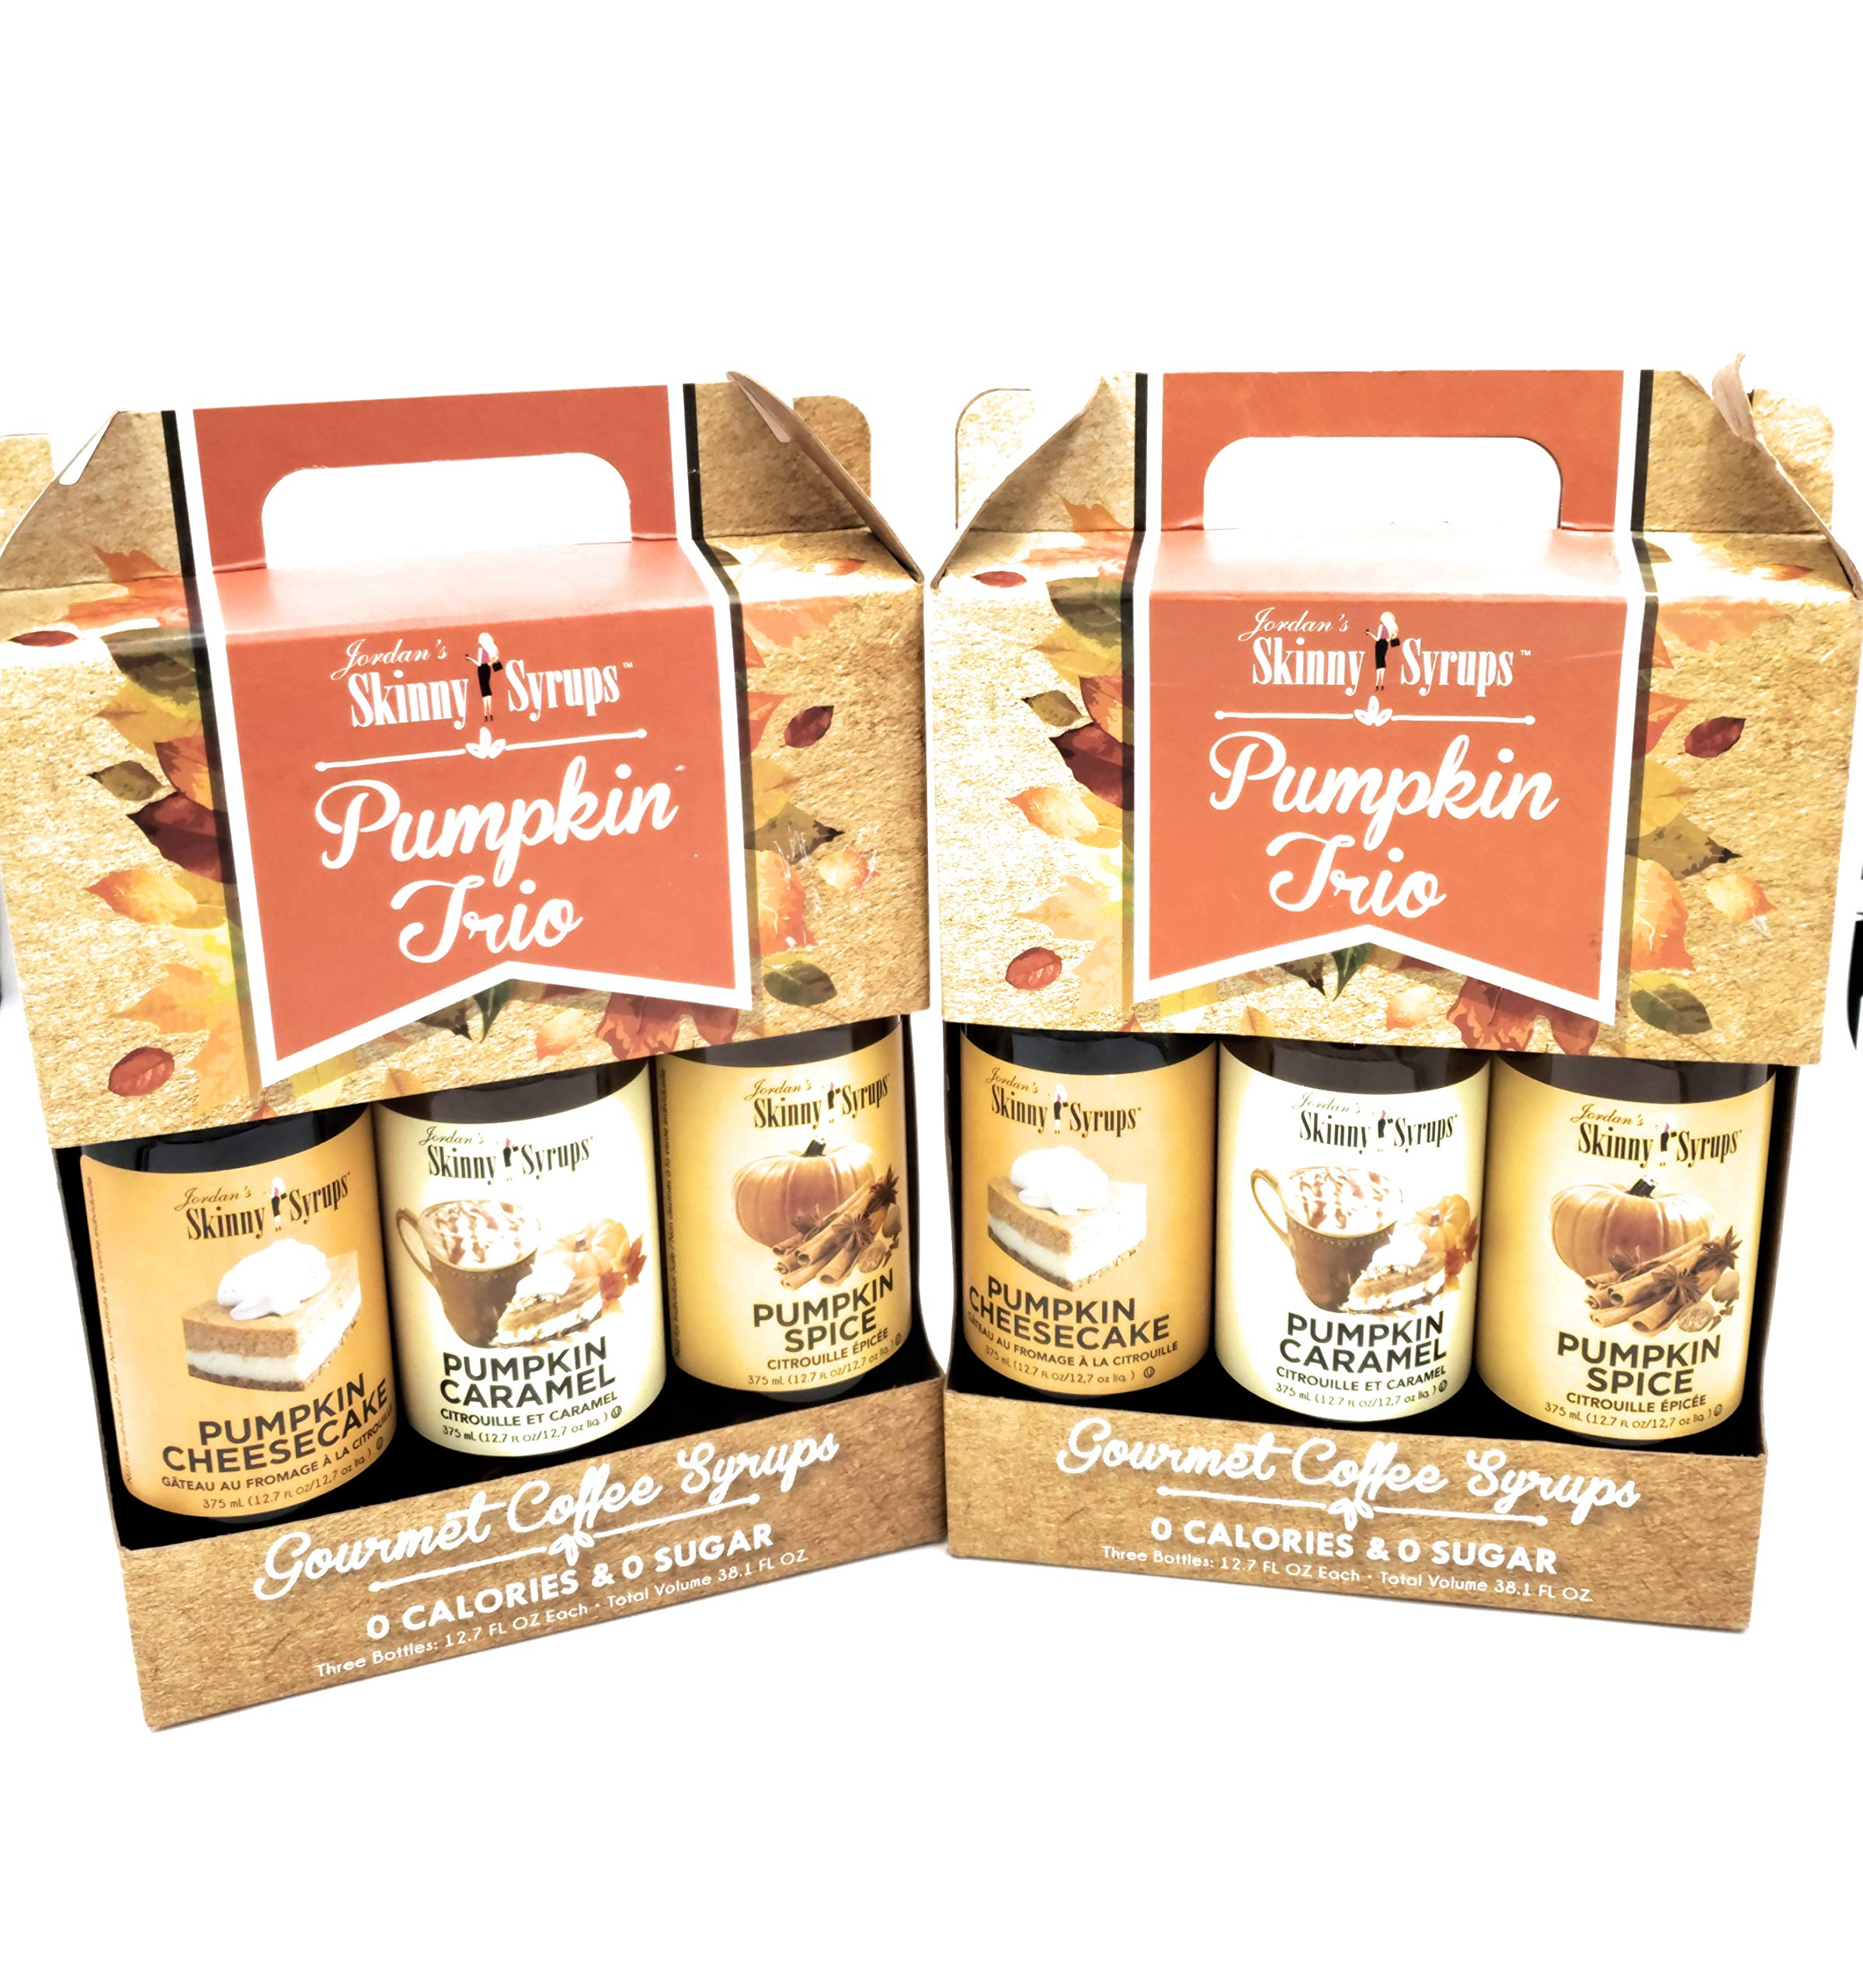 Fall Autumn Skinny Syrups Trio Pack Pumpkin Spice Pumpkin Caramel and Pumpkin Cheesecake (3- 12.7 Ounce Bottles) Gluten-Free and Kosher Fall Autumn Harvest Flavors (BONUS JFW Exclusive Fall in Love) by JFW